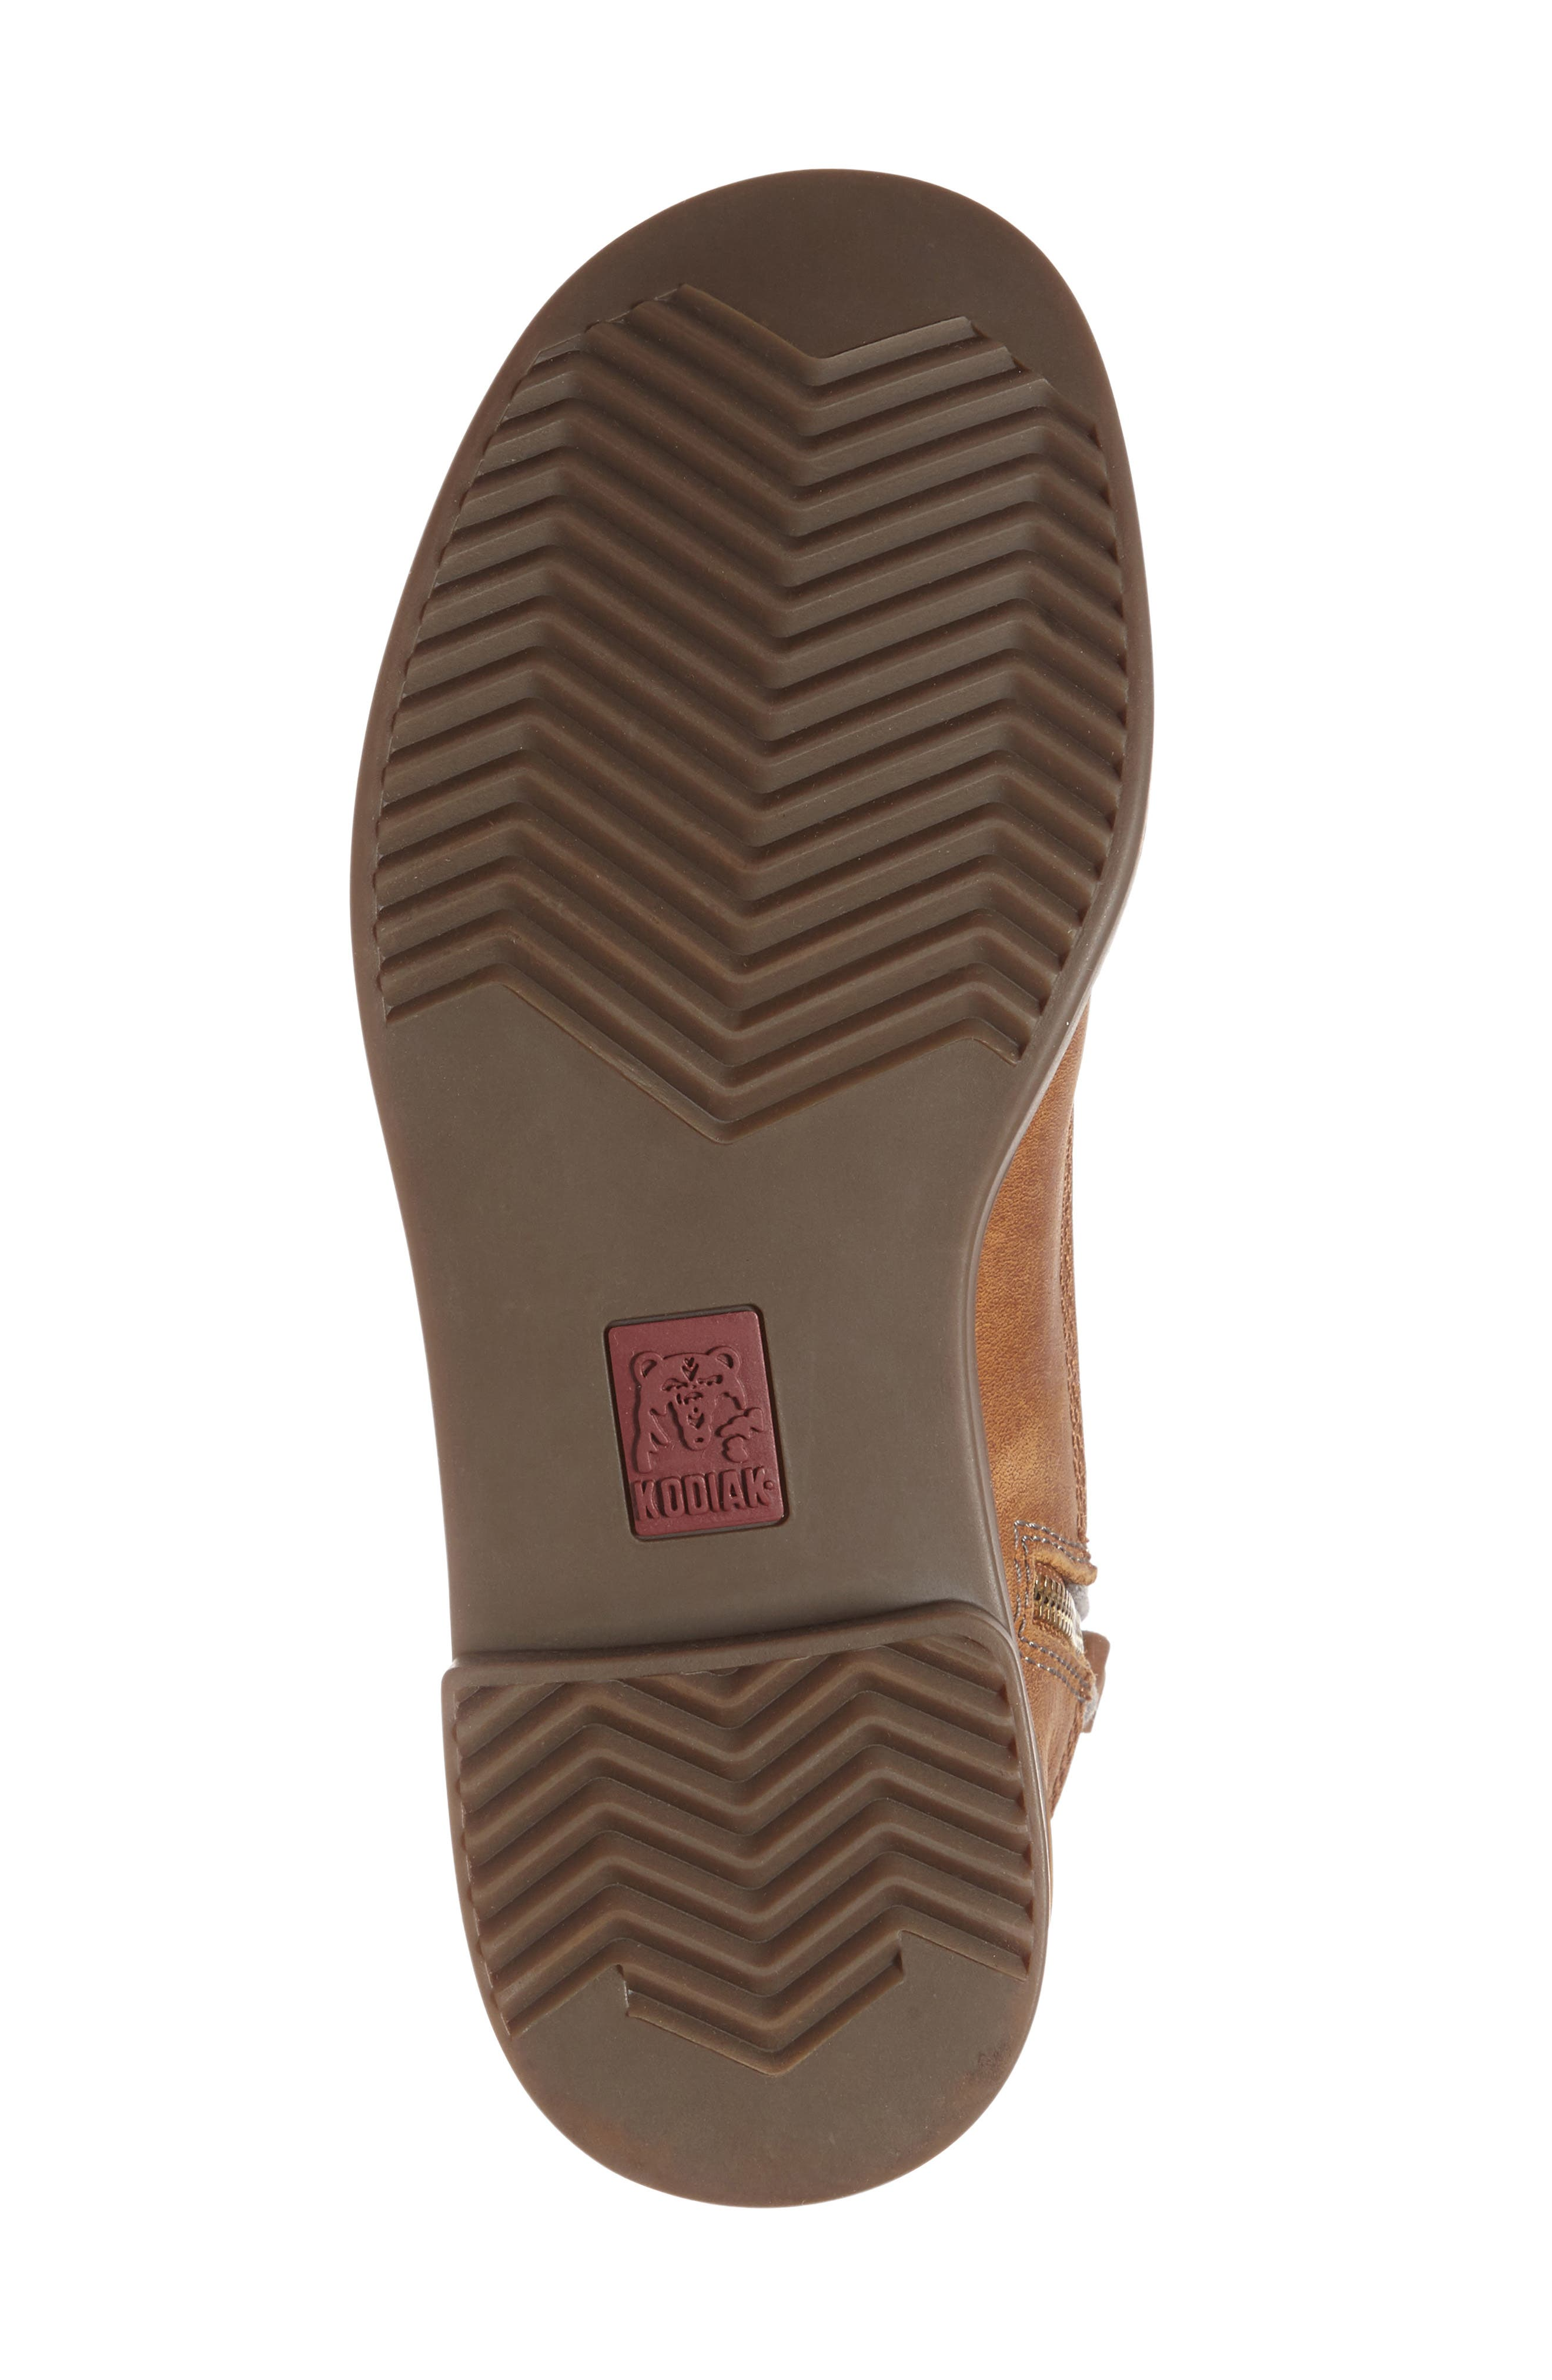 'Addison' Waterproof Insulated Zip Boot,                             Alternate thumbnail 4, color,                             Caramel/ Grey Leather